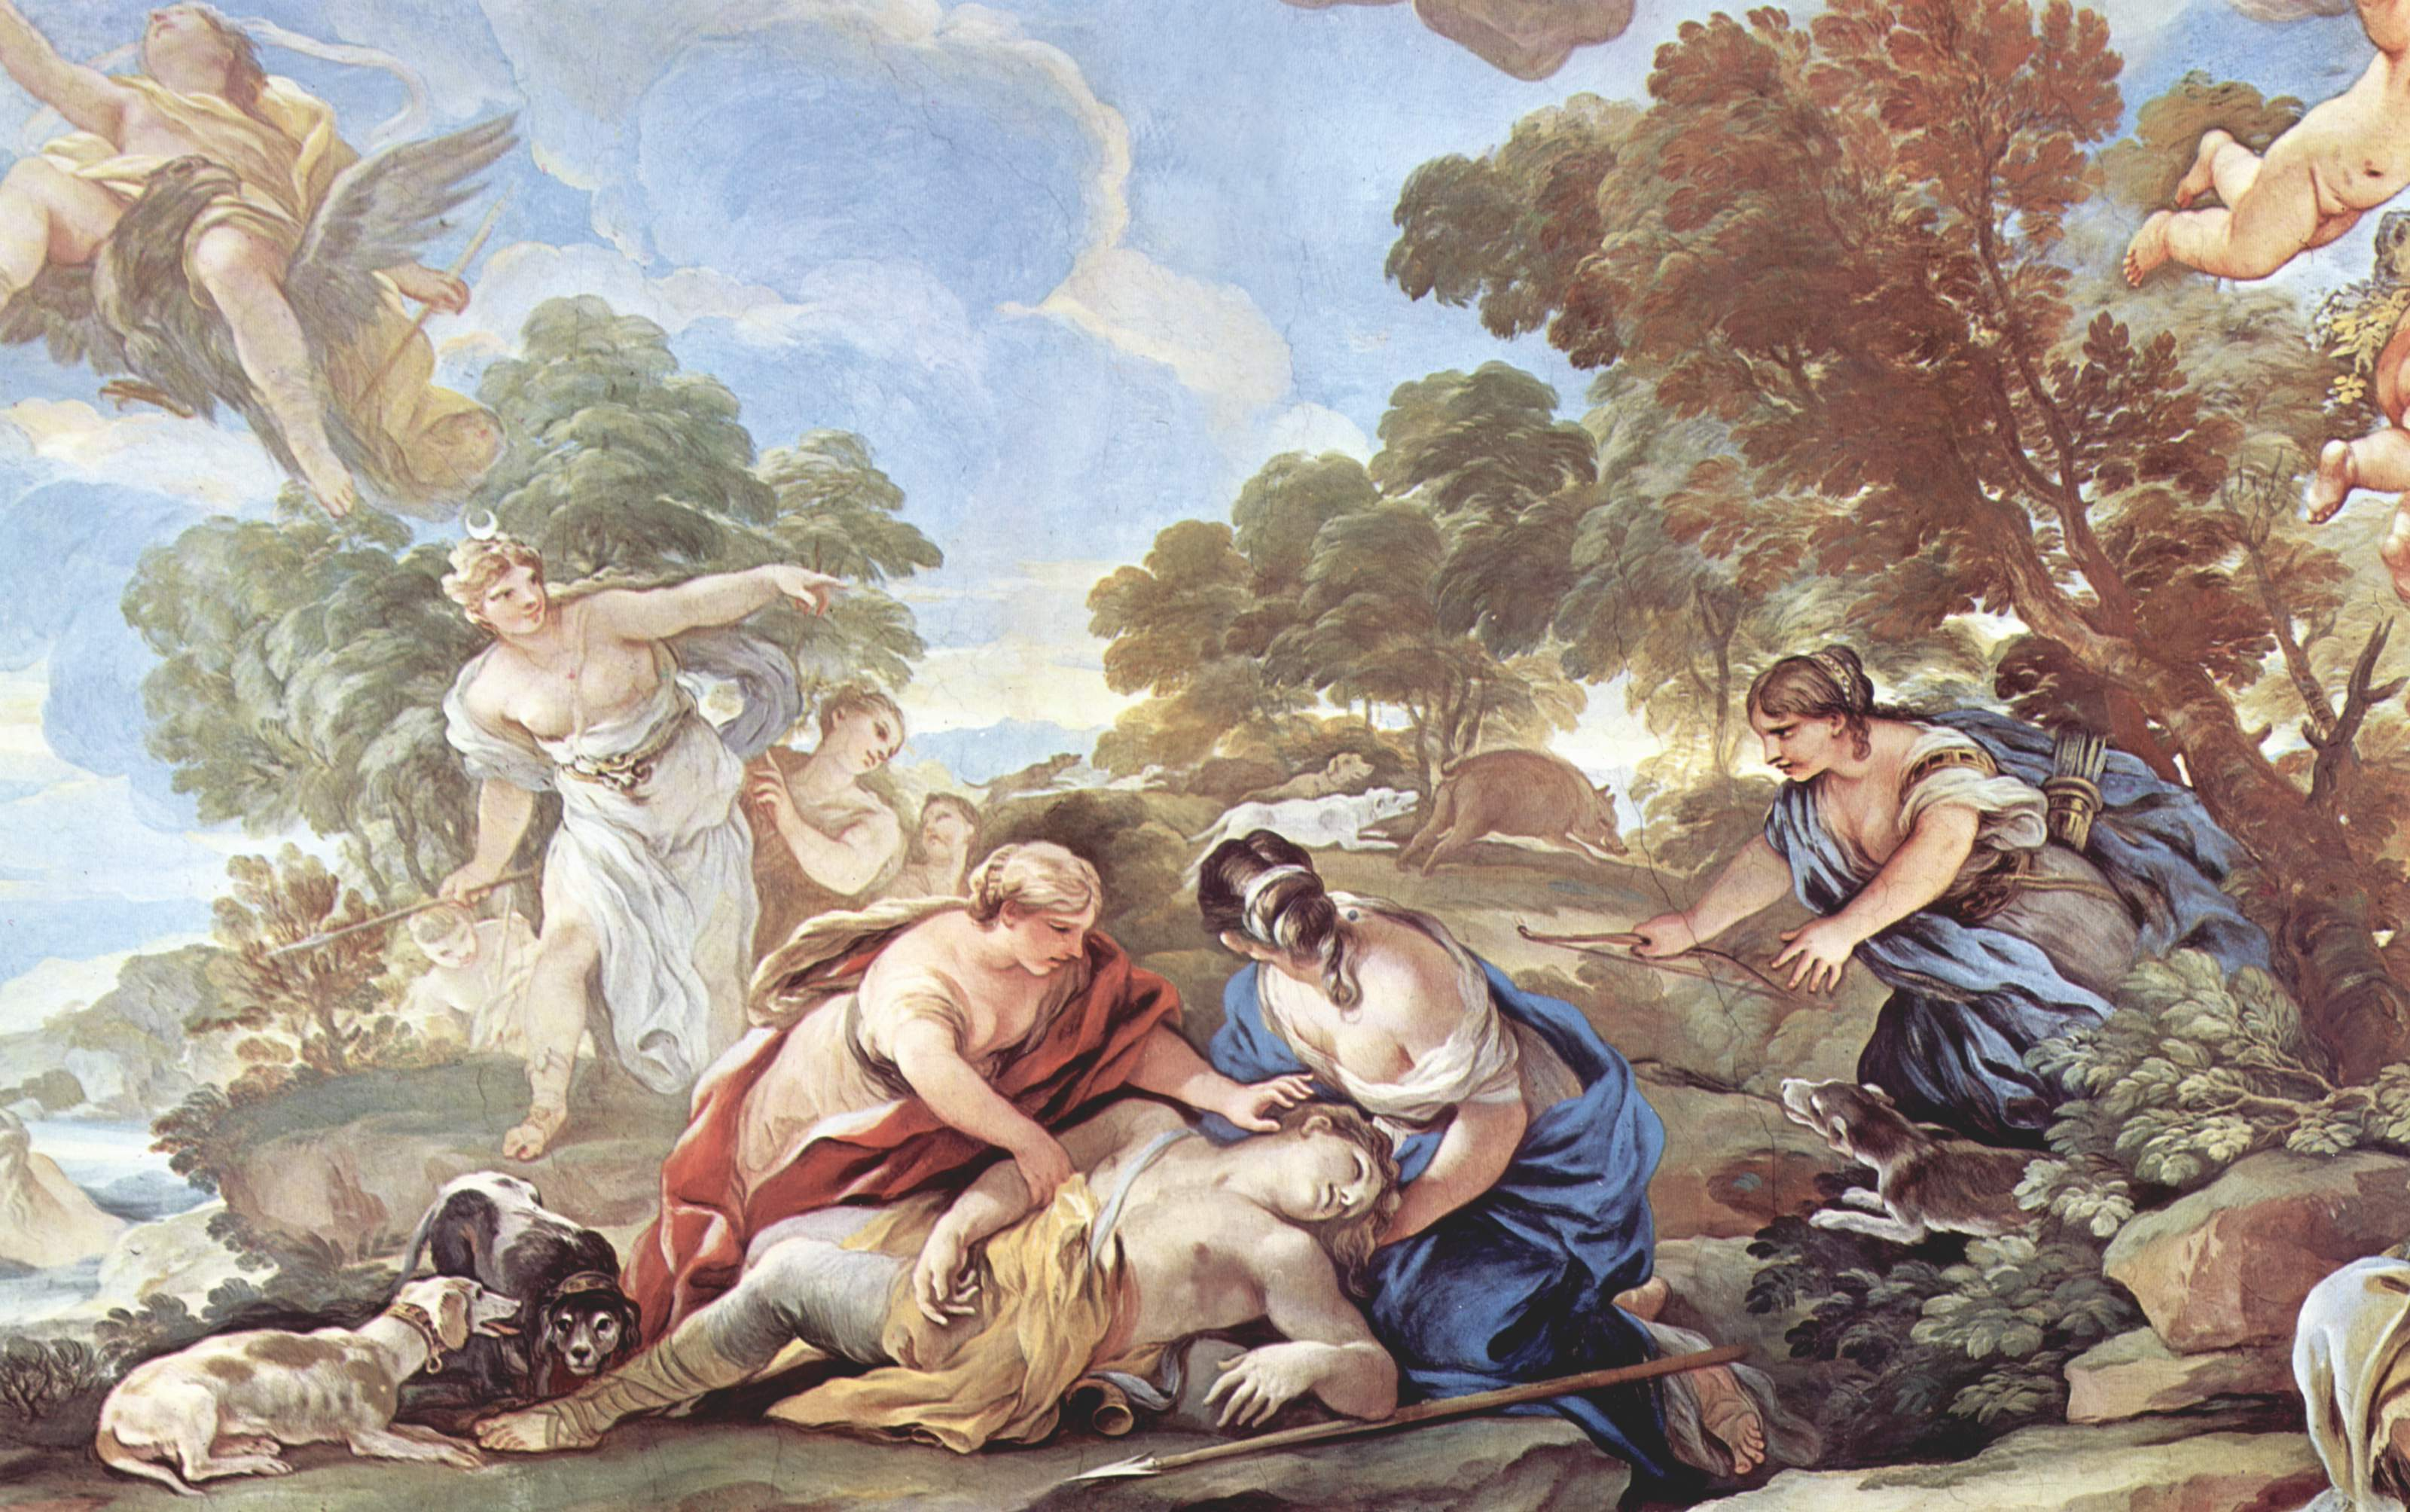 adonis and aphrodite relationship with other god